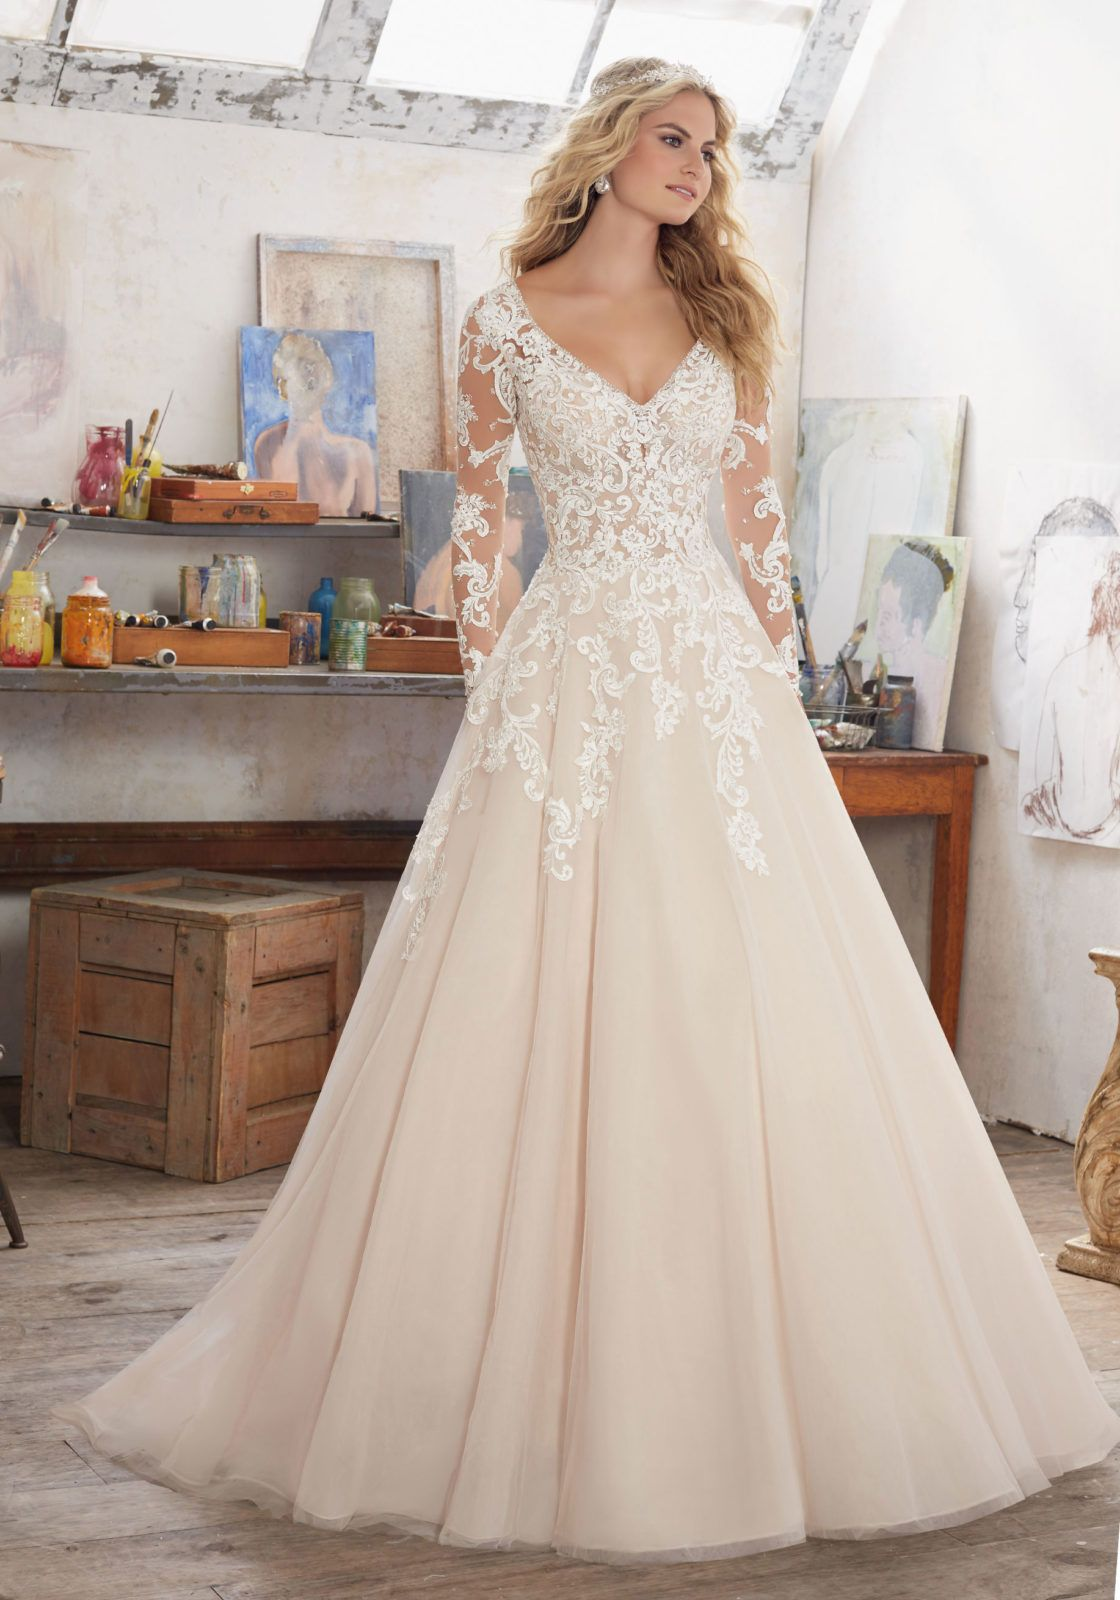 Available now off the rack nancys bridal 1148 maira wedding available now off the rack nancys bridal 1148 maira wedding dress style 8110 ombrellifo Choice Image